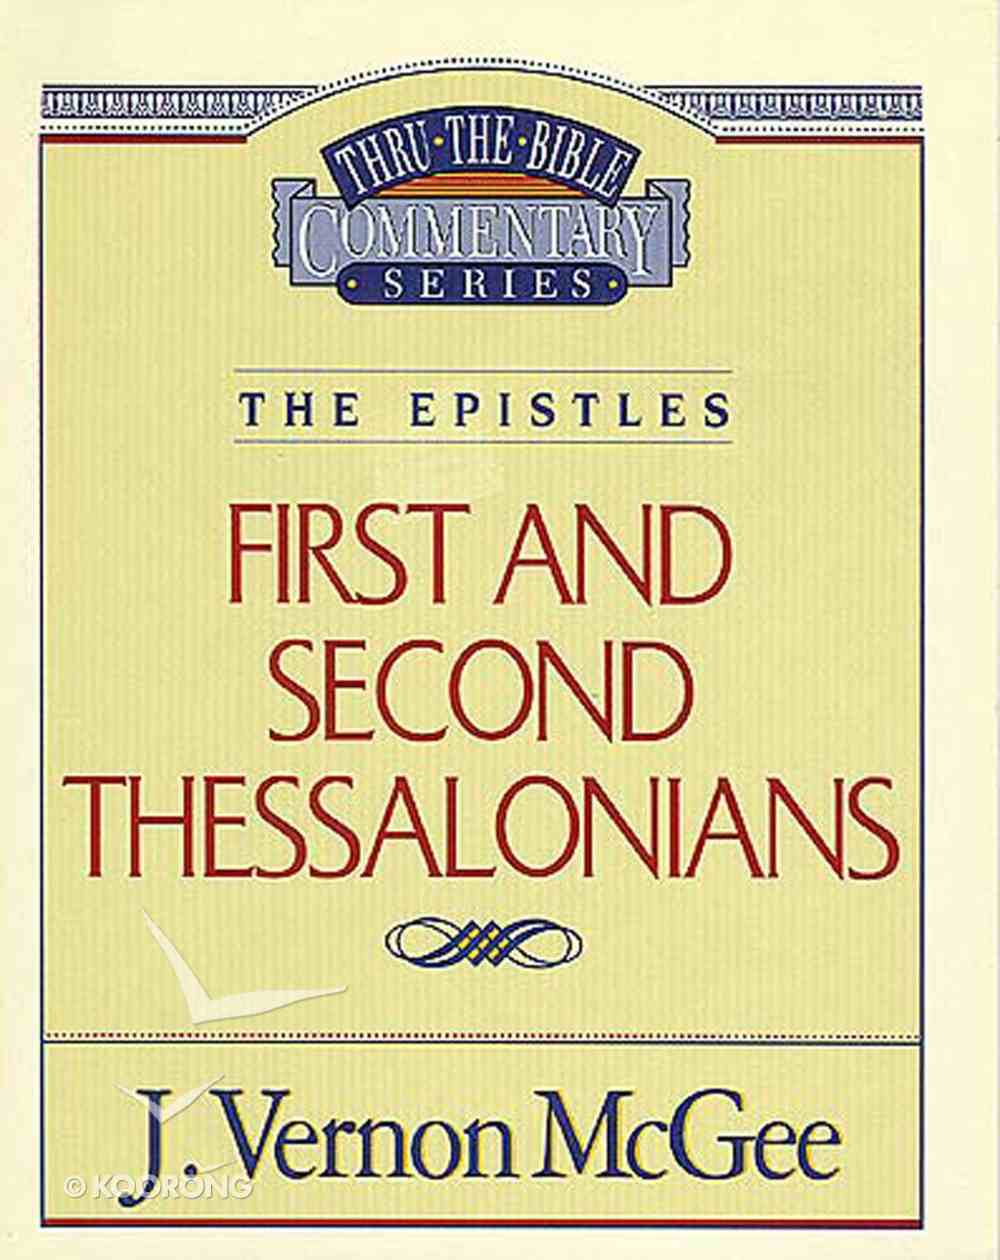 Thru the Bible NT #49: The Epistles (1 and 2 Thessalonians) (#49 in Thru The Bible New Testament Series) eBook